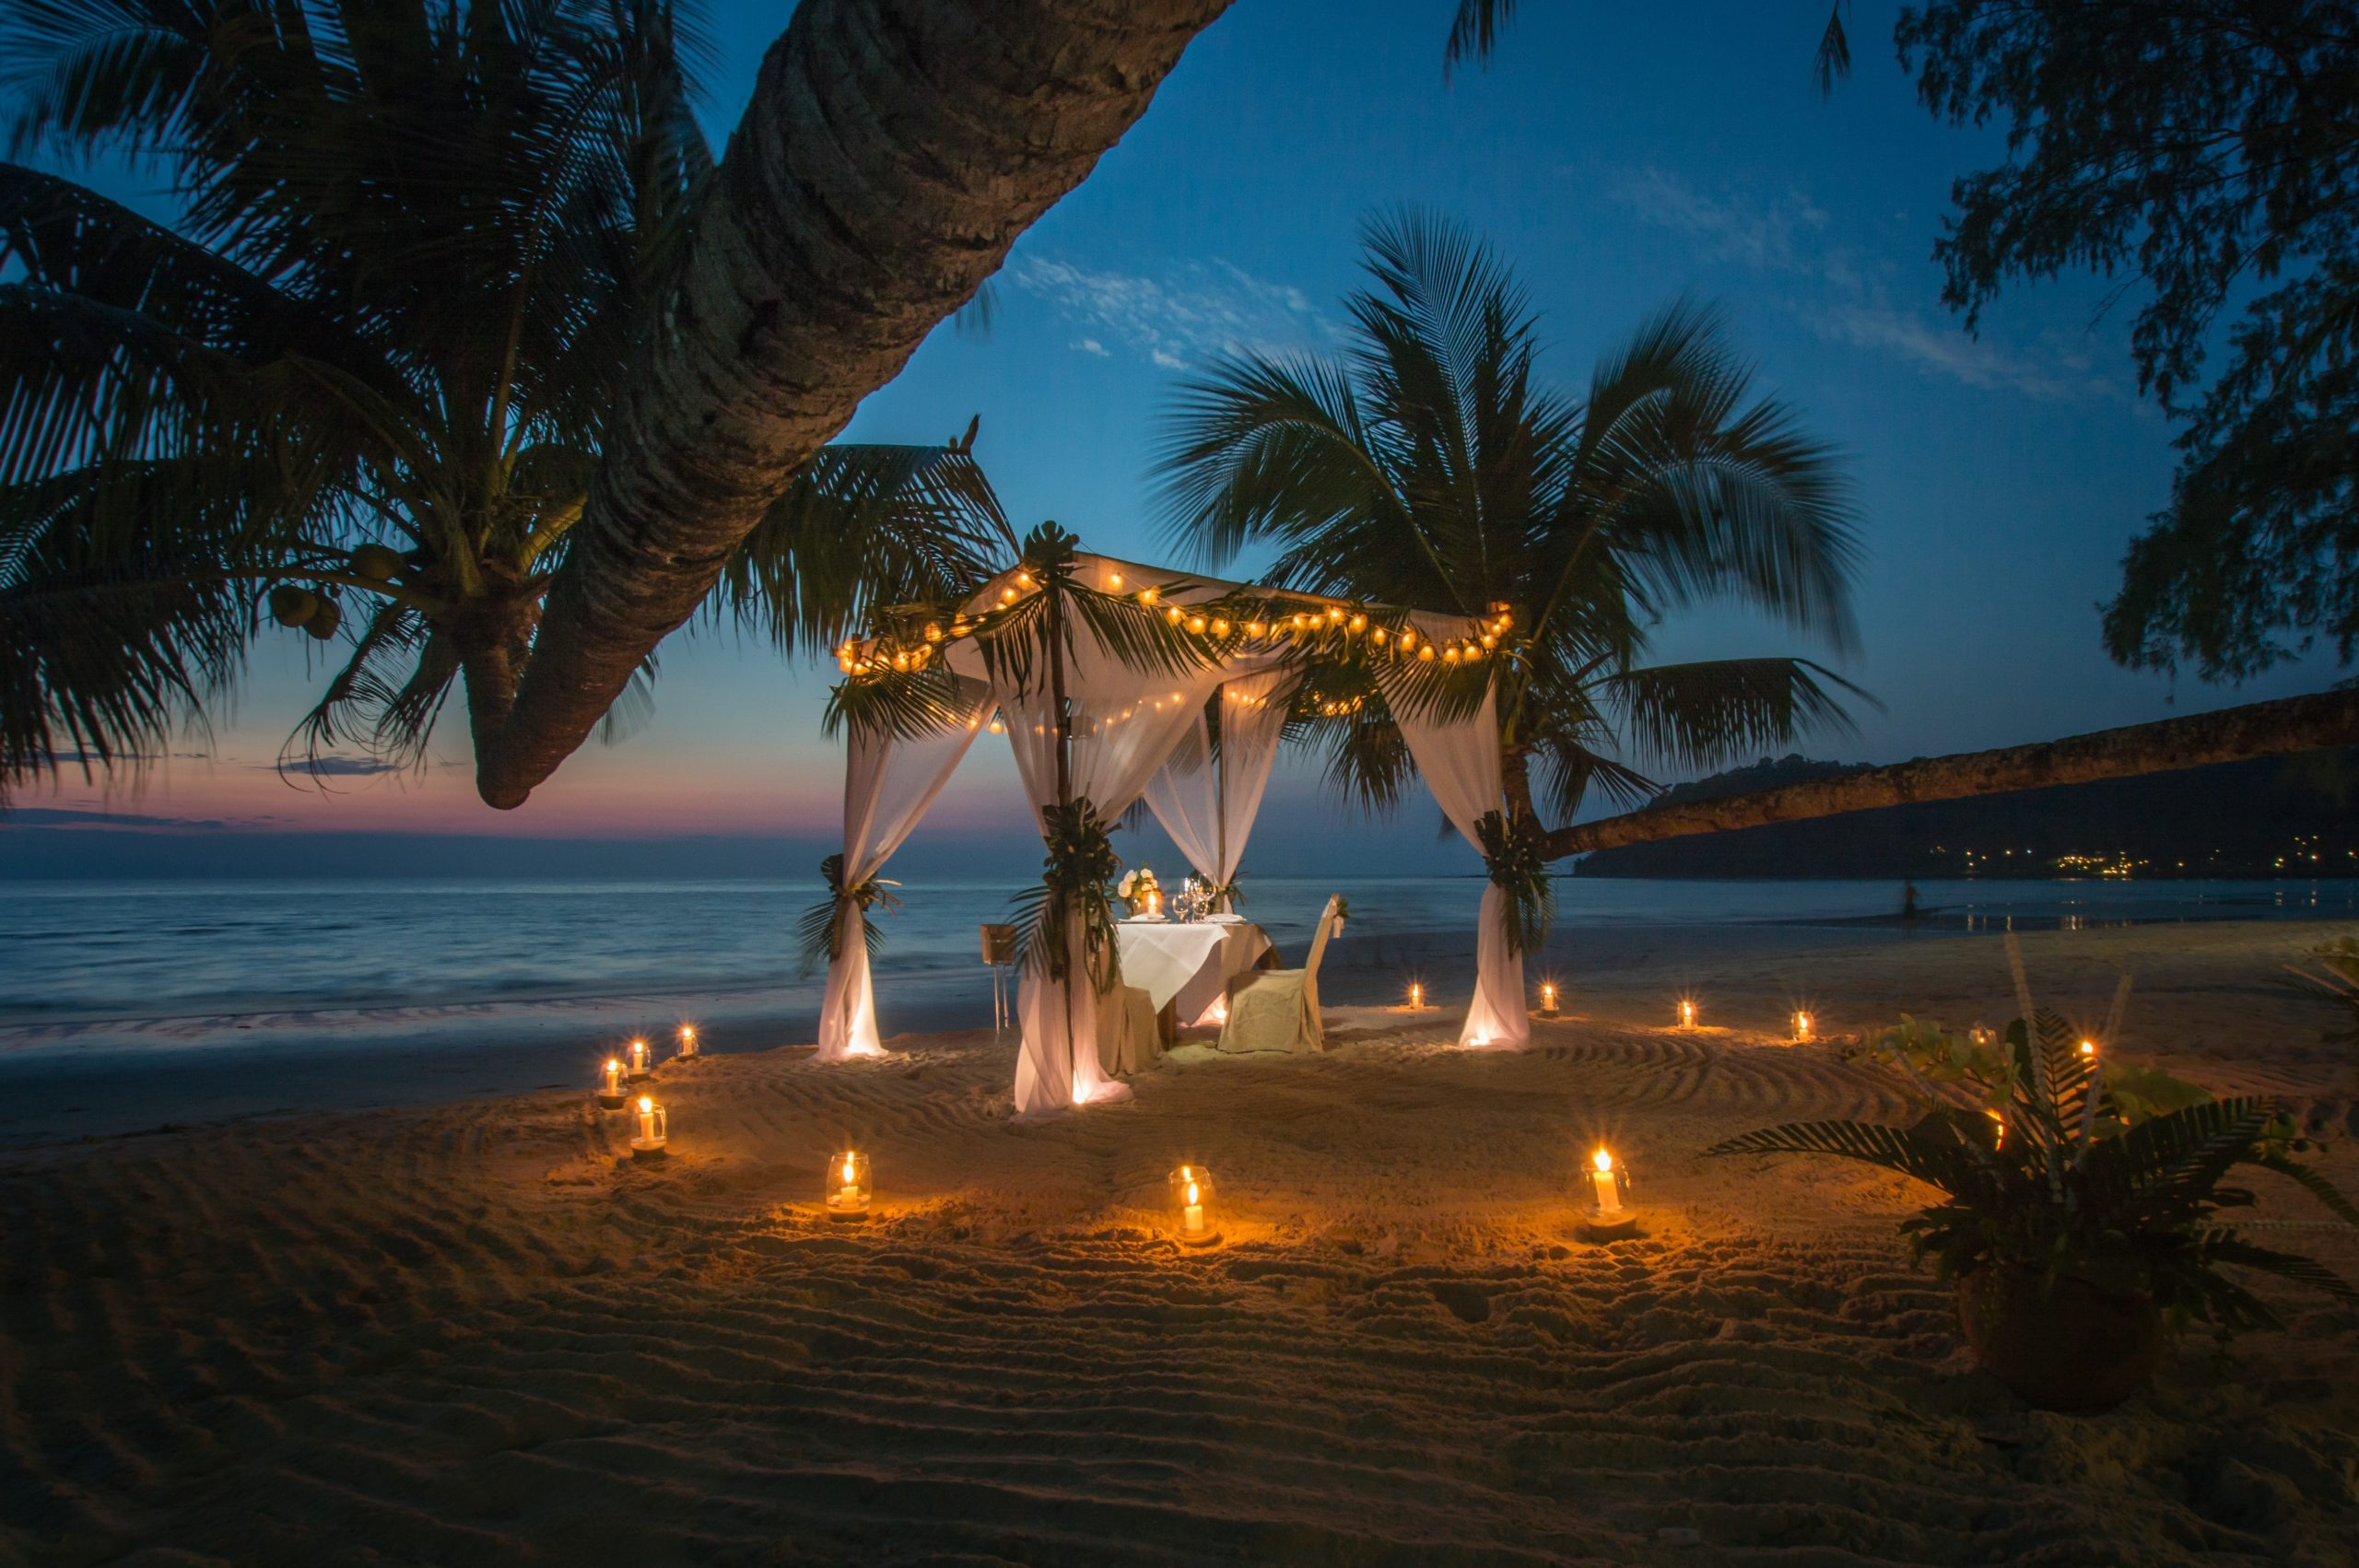 A tent set up in the middle of a beach for a romantic dinner